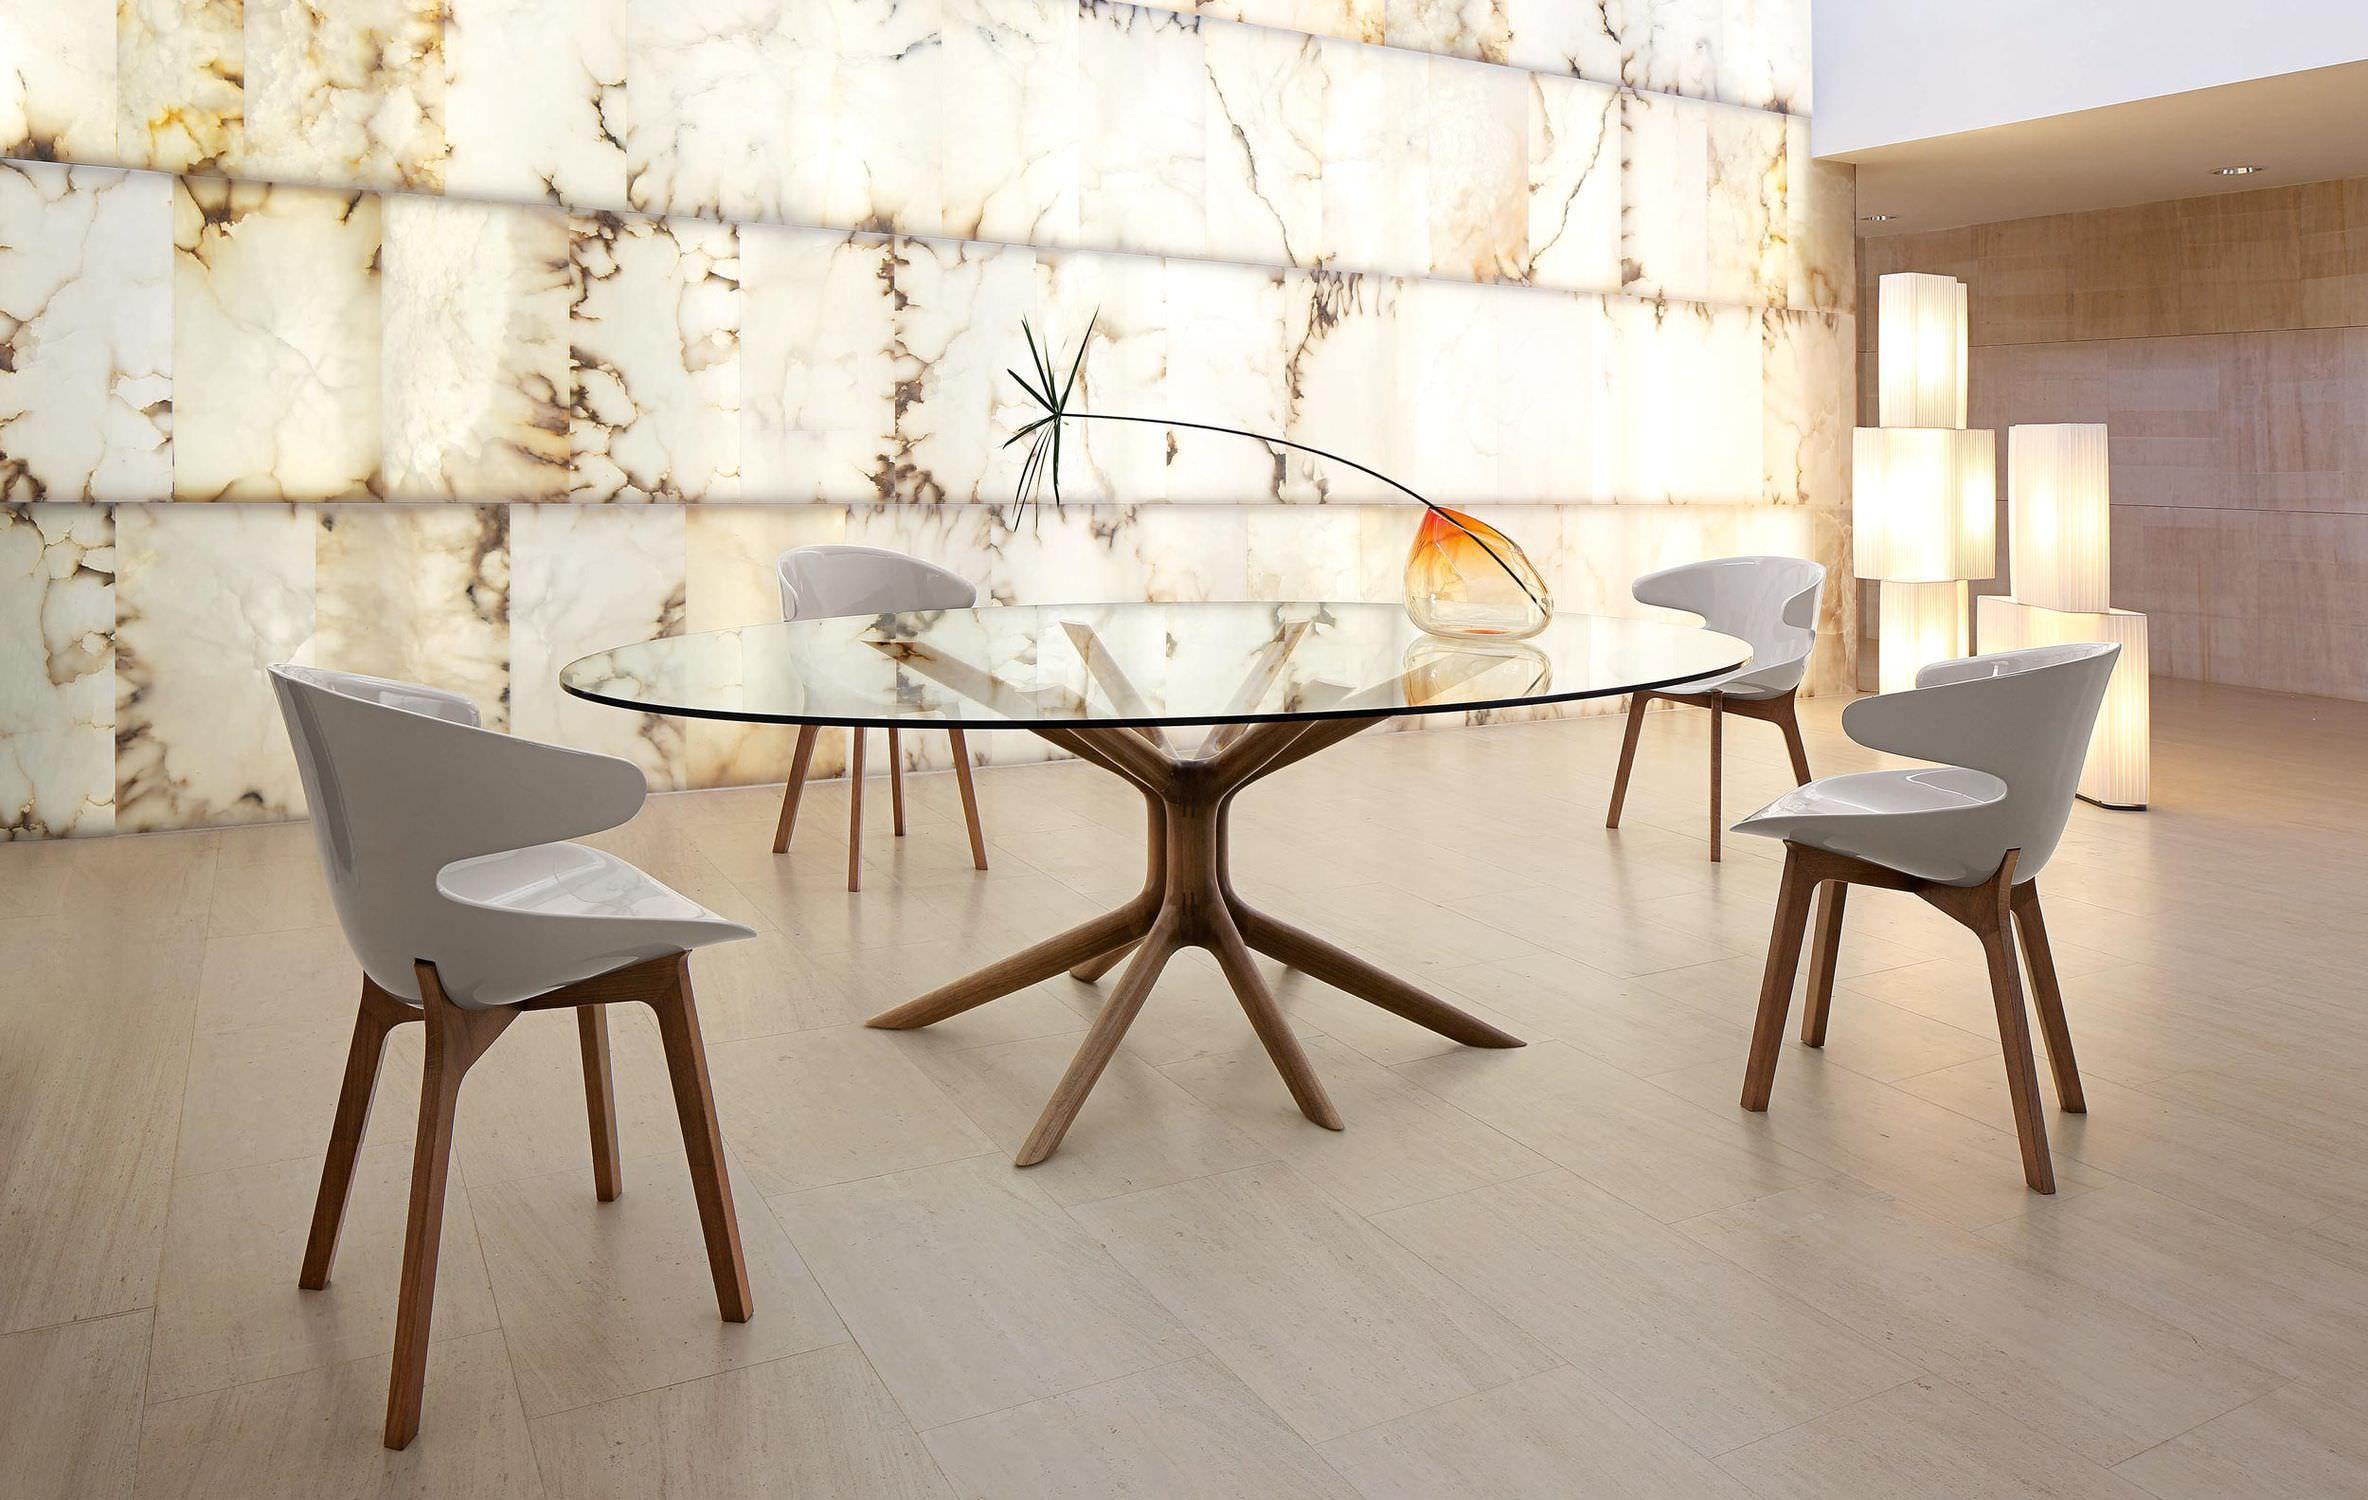 roche bobois google search furniture contemporary dining table table dining table design